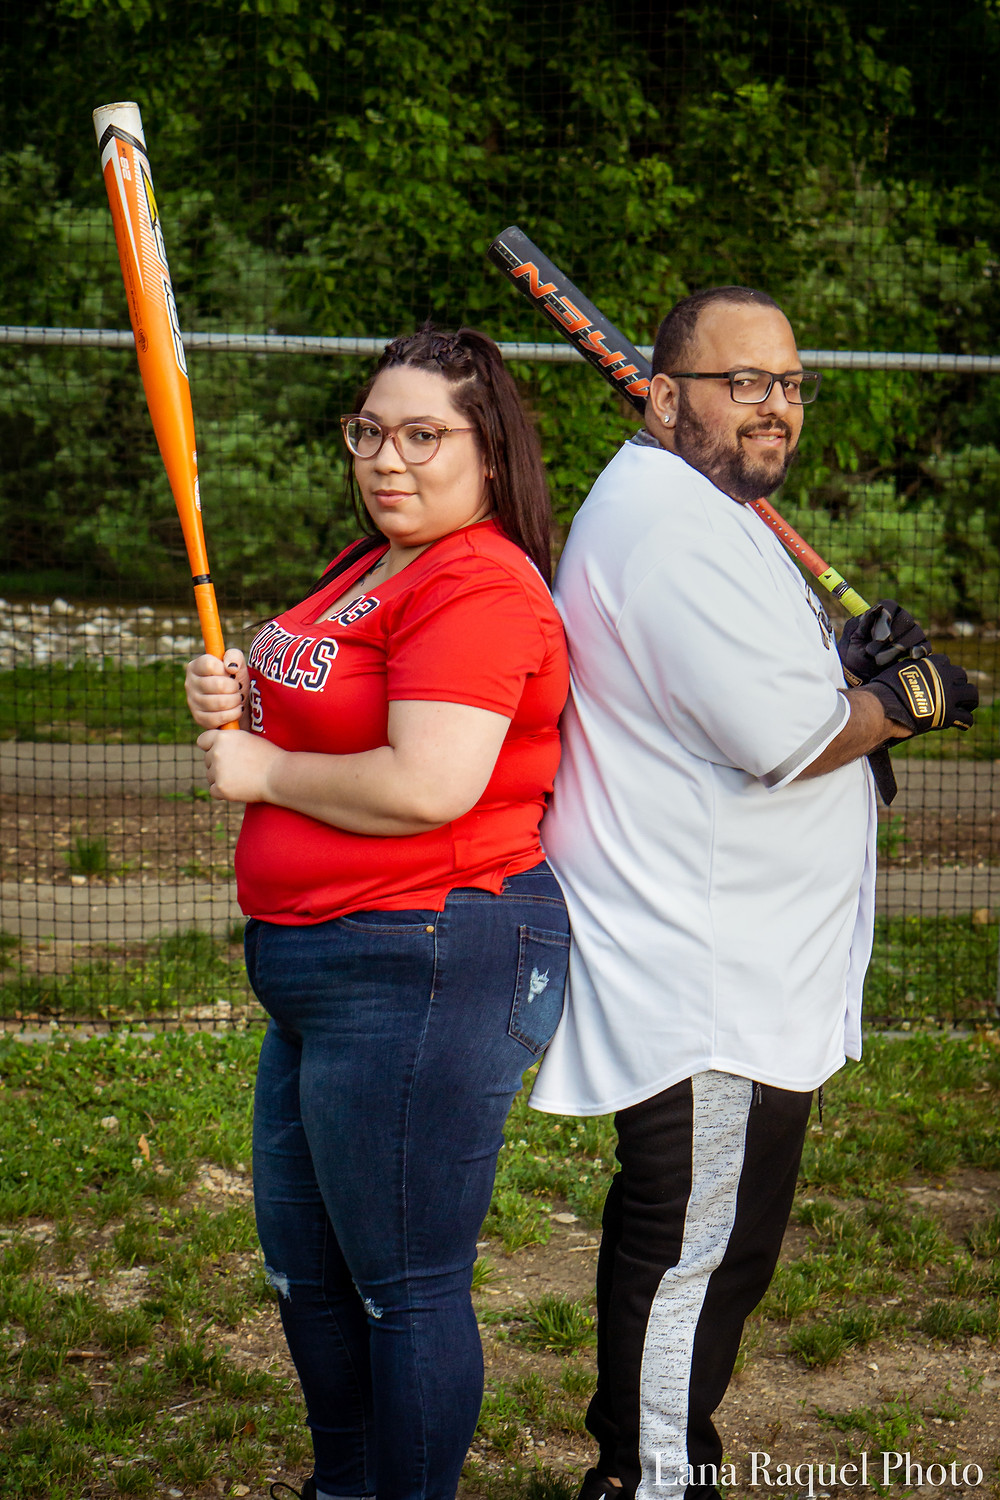 Baseball Photoshoot of Husband and Wife